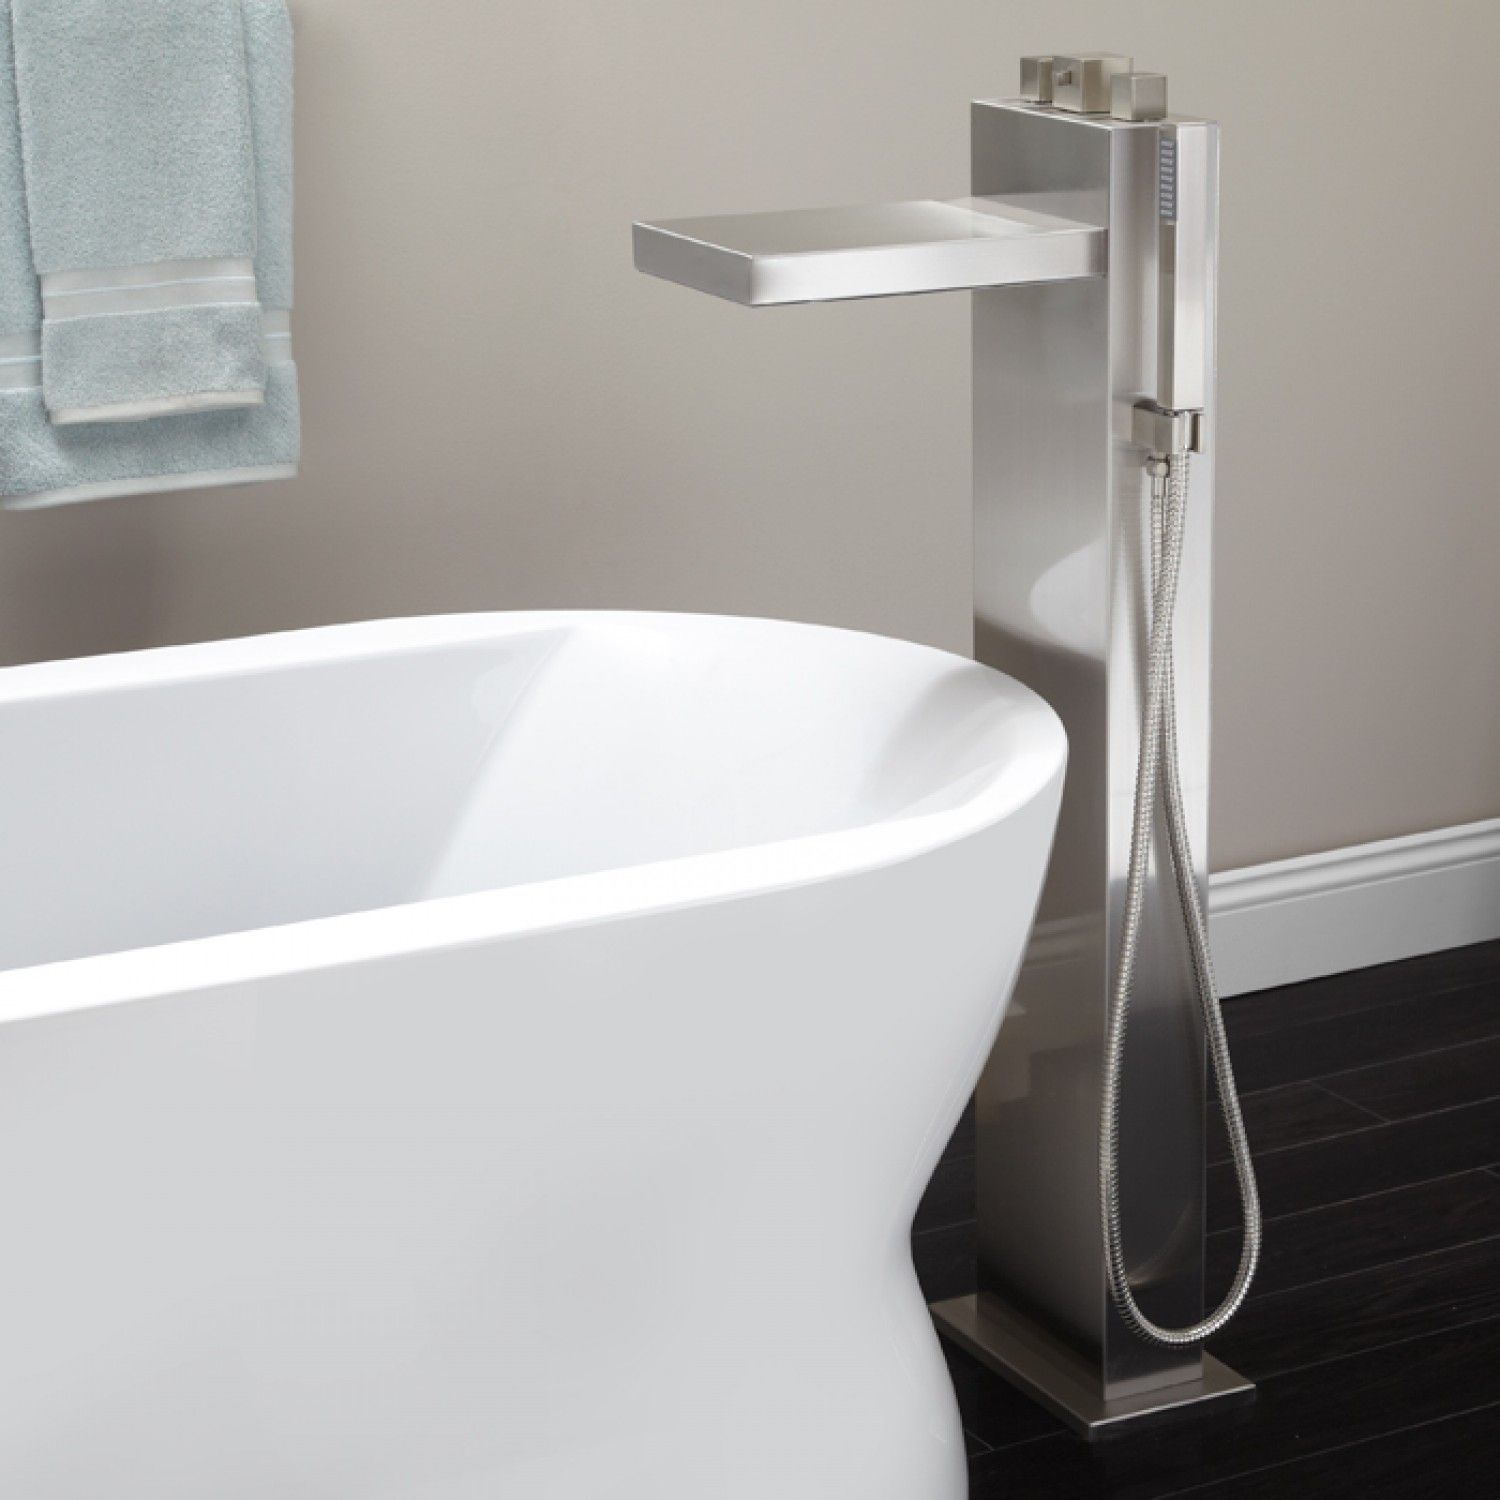 Grotto Freestanding Thermostatic Waterfall Tub Faucet - Tub Faucets ...